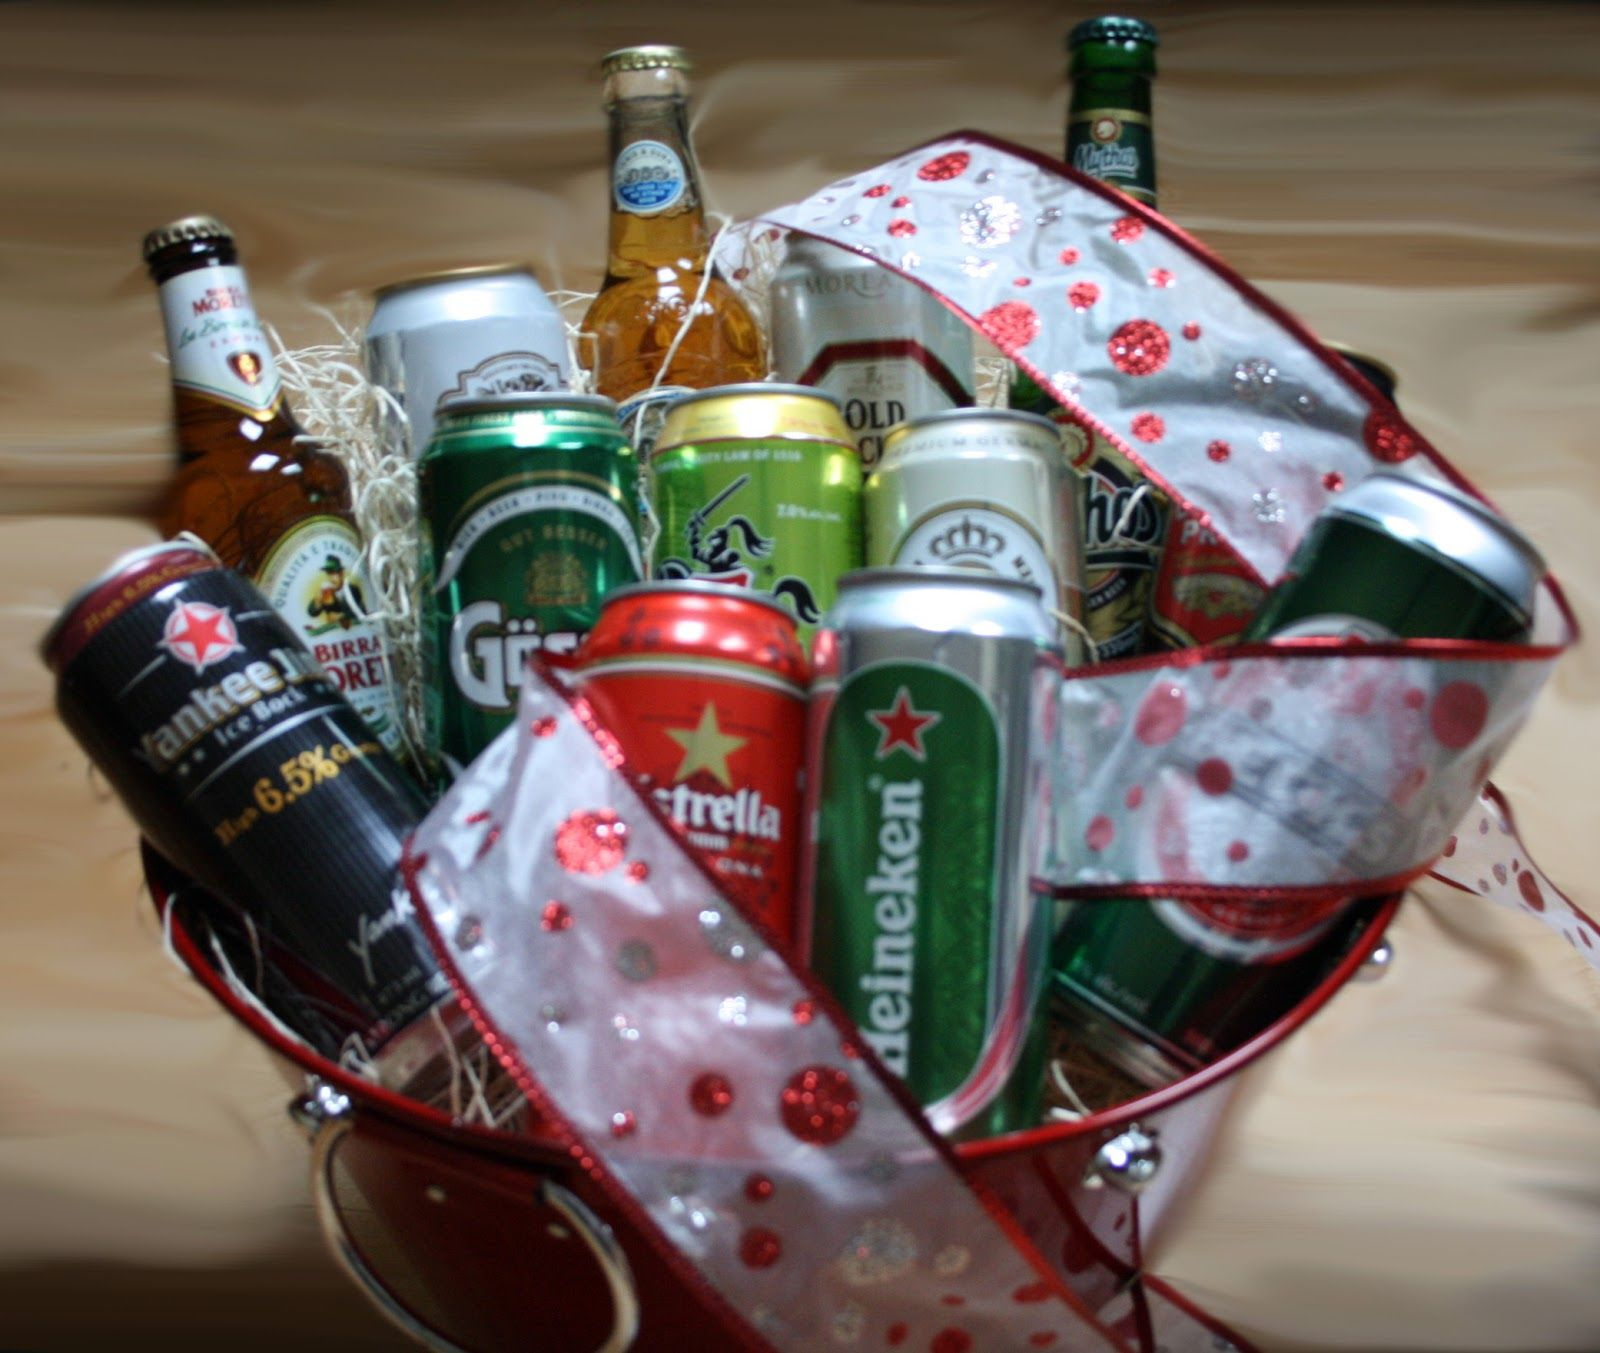 Beer sampler bucket the perfect gift for the lover of